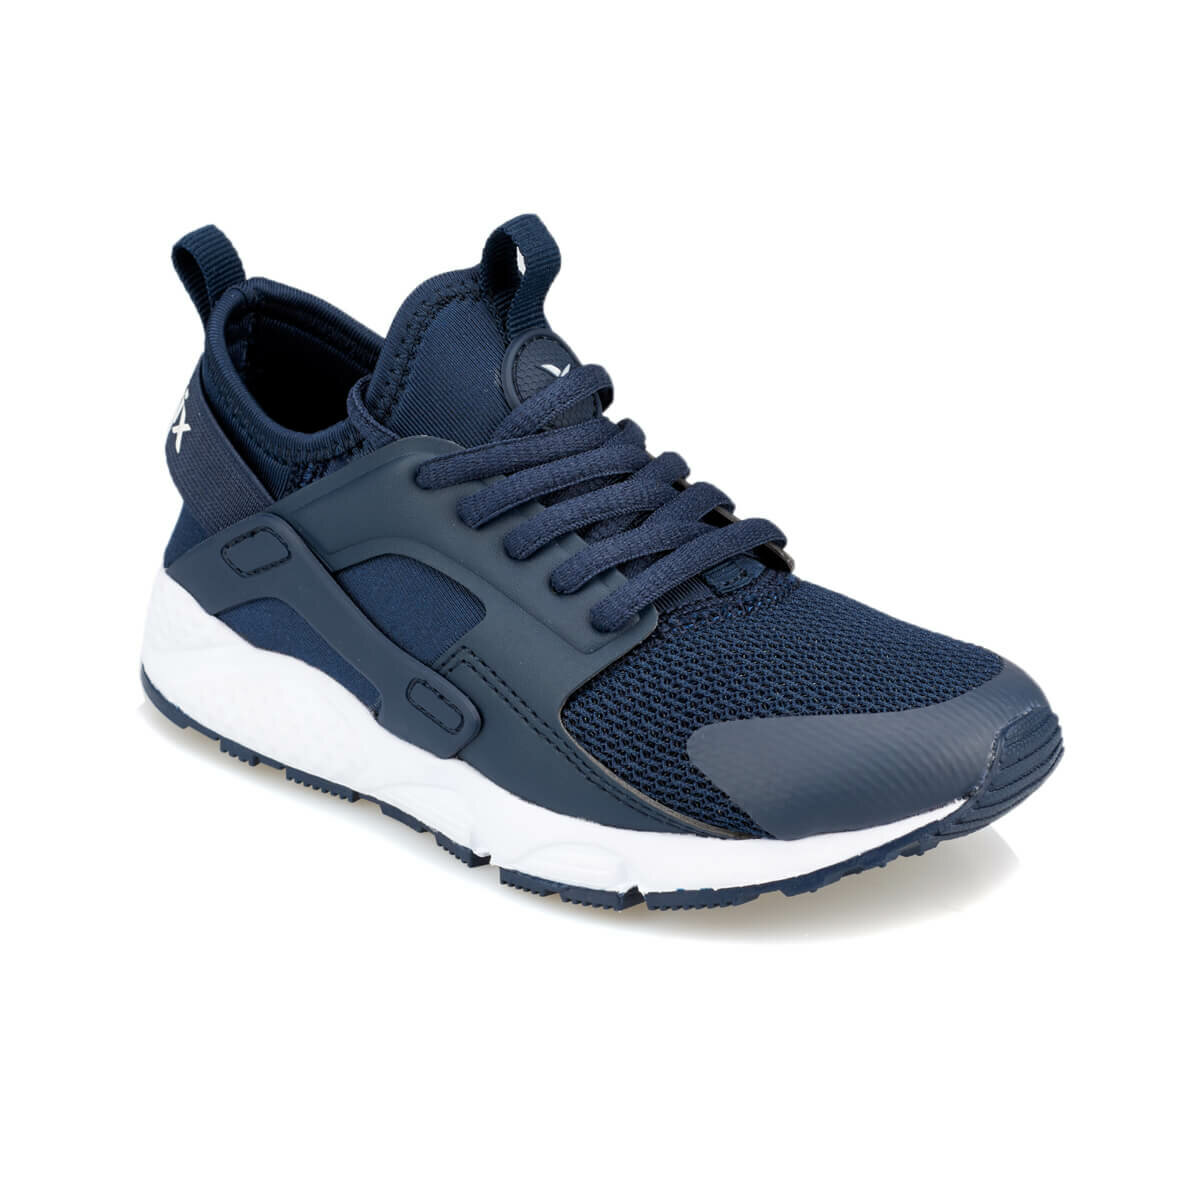 FLO APUS Navy Blue Male Child Sneaker Shoes KINETIX